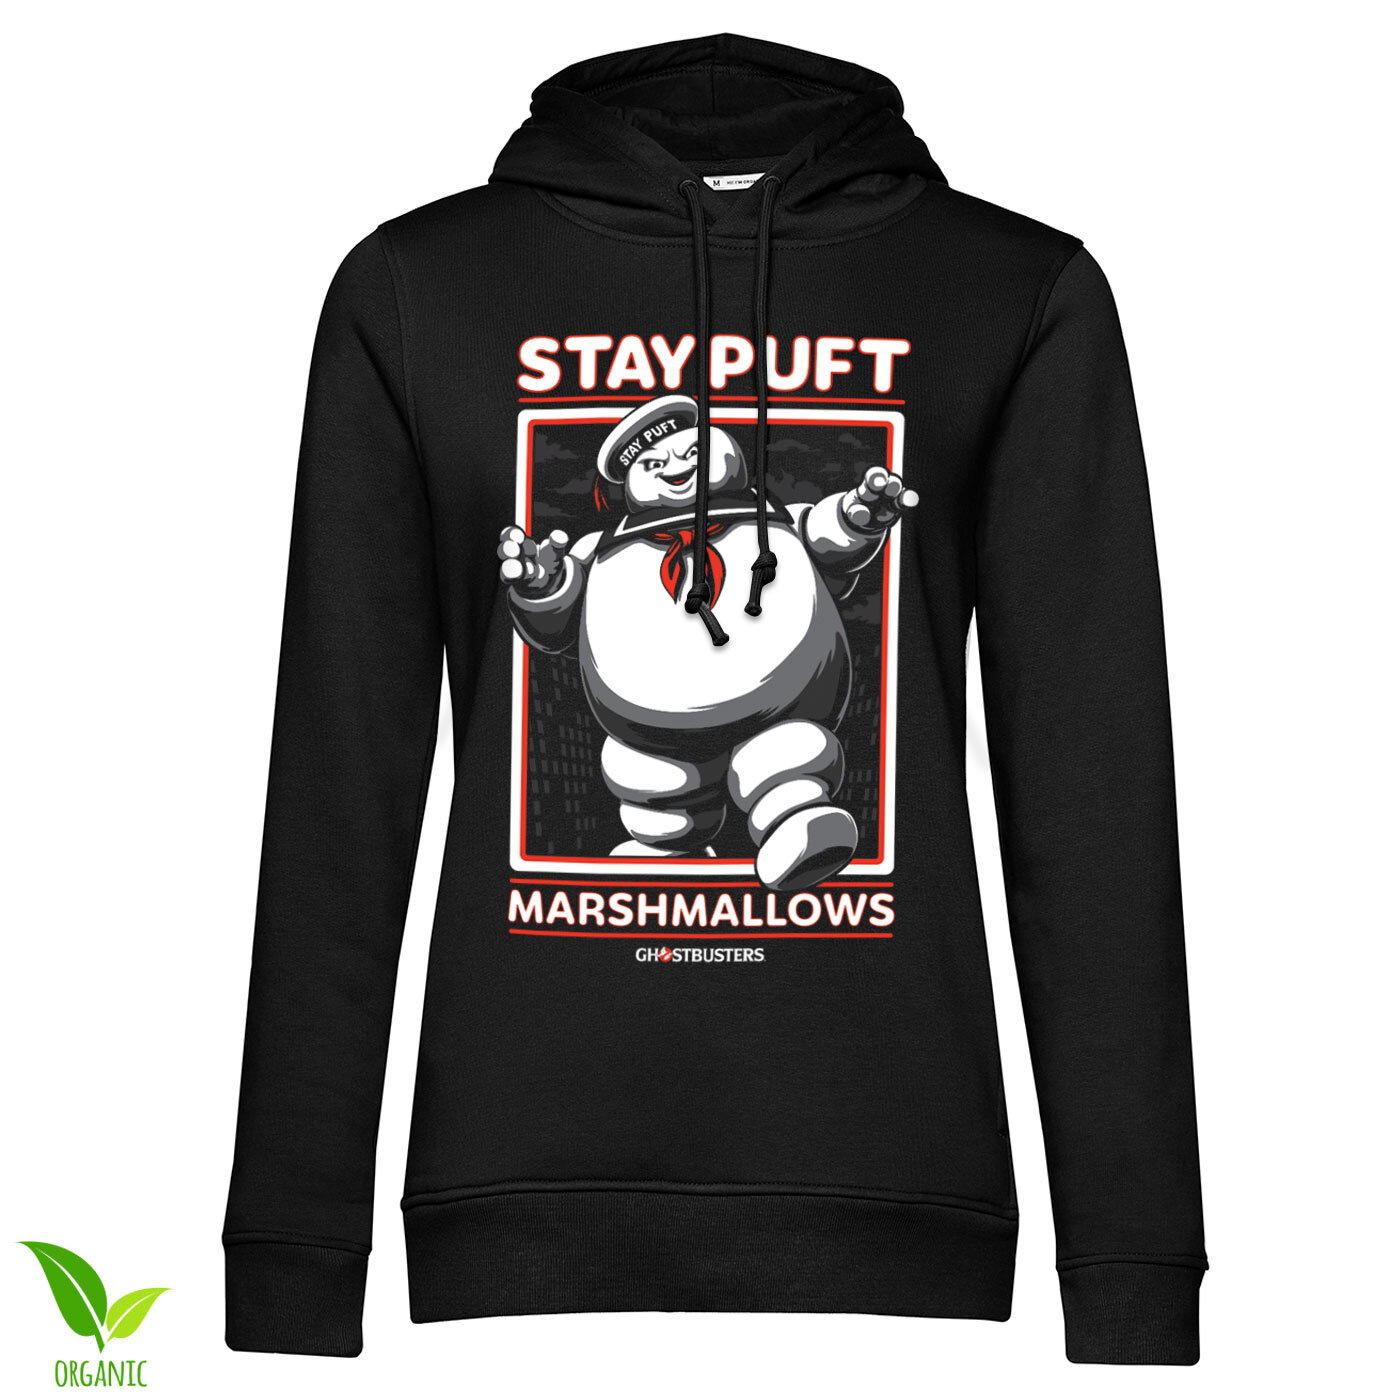 Stay Puft Marshmallows Girls Hoodie